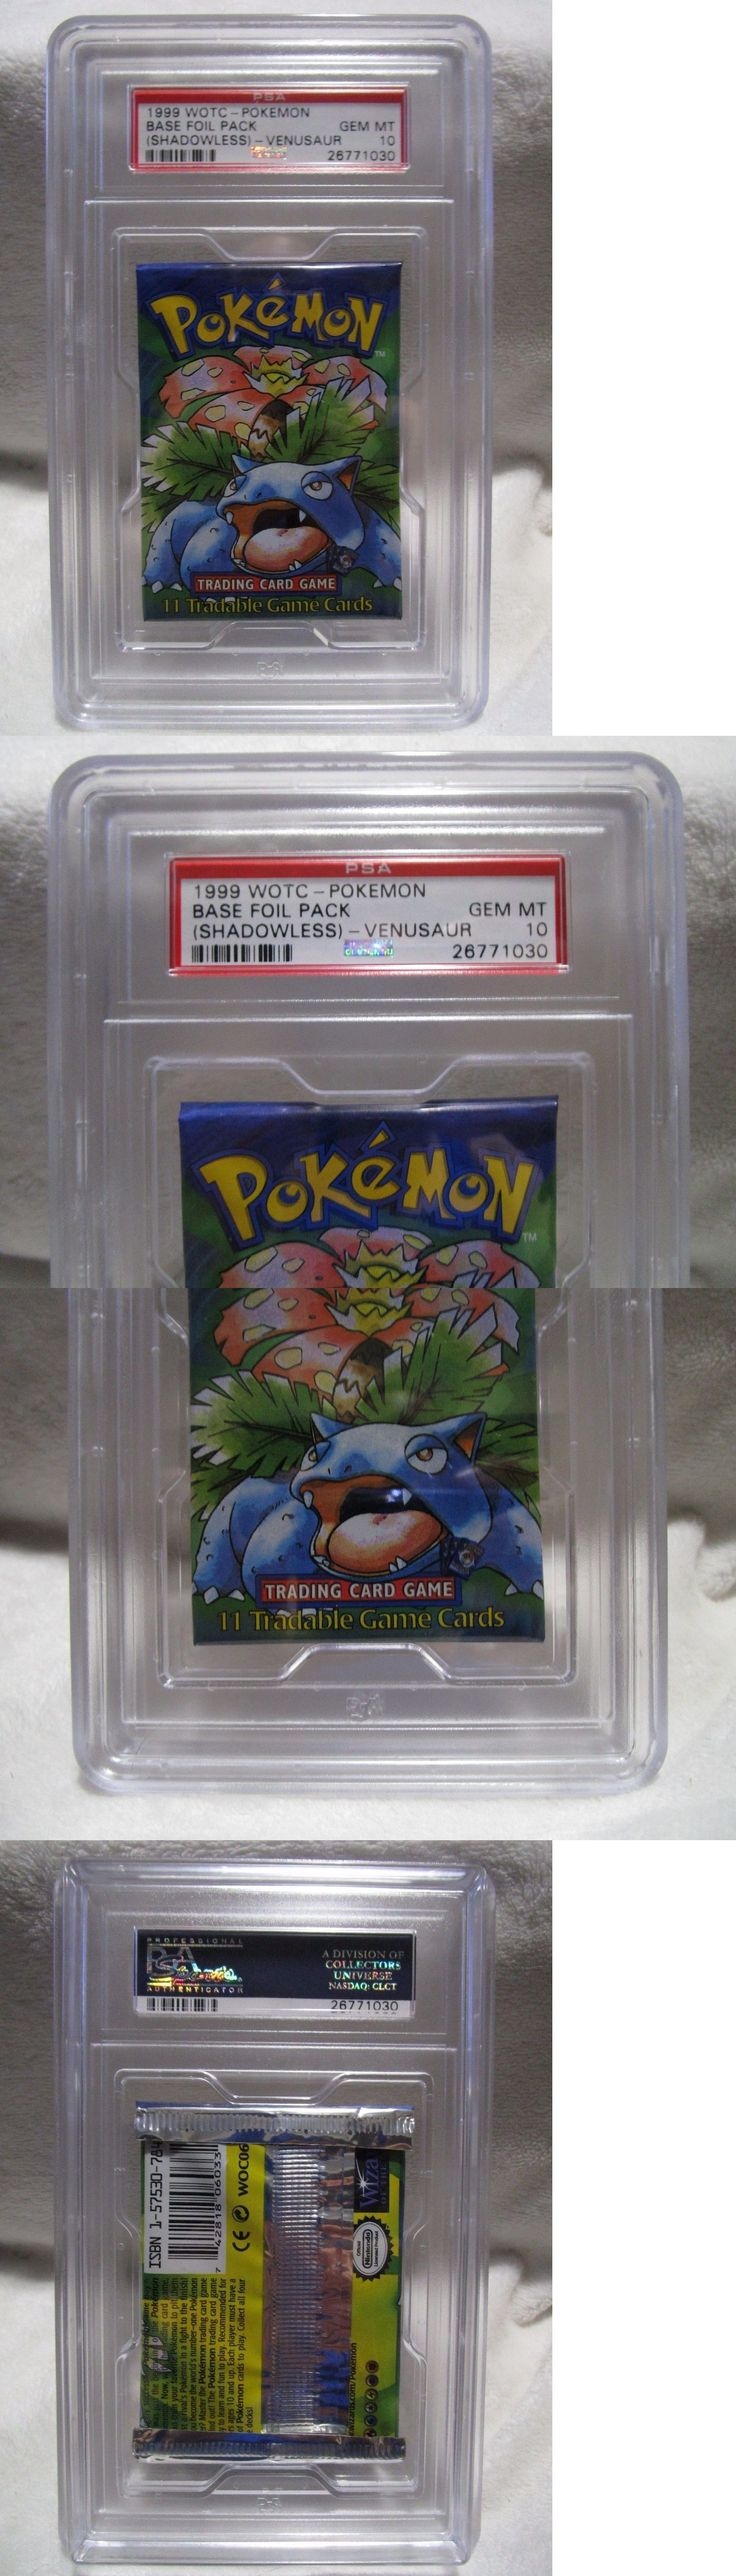 Pok mon Individual Cards 2611: Psa 10 Gem Mint Shadowless Base Venusaur Art Booster Pack Of Pokemon Cards S23 -> BUY IT NOW ONLY: $129.99 on eBay!